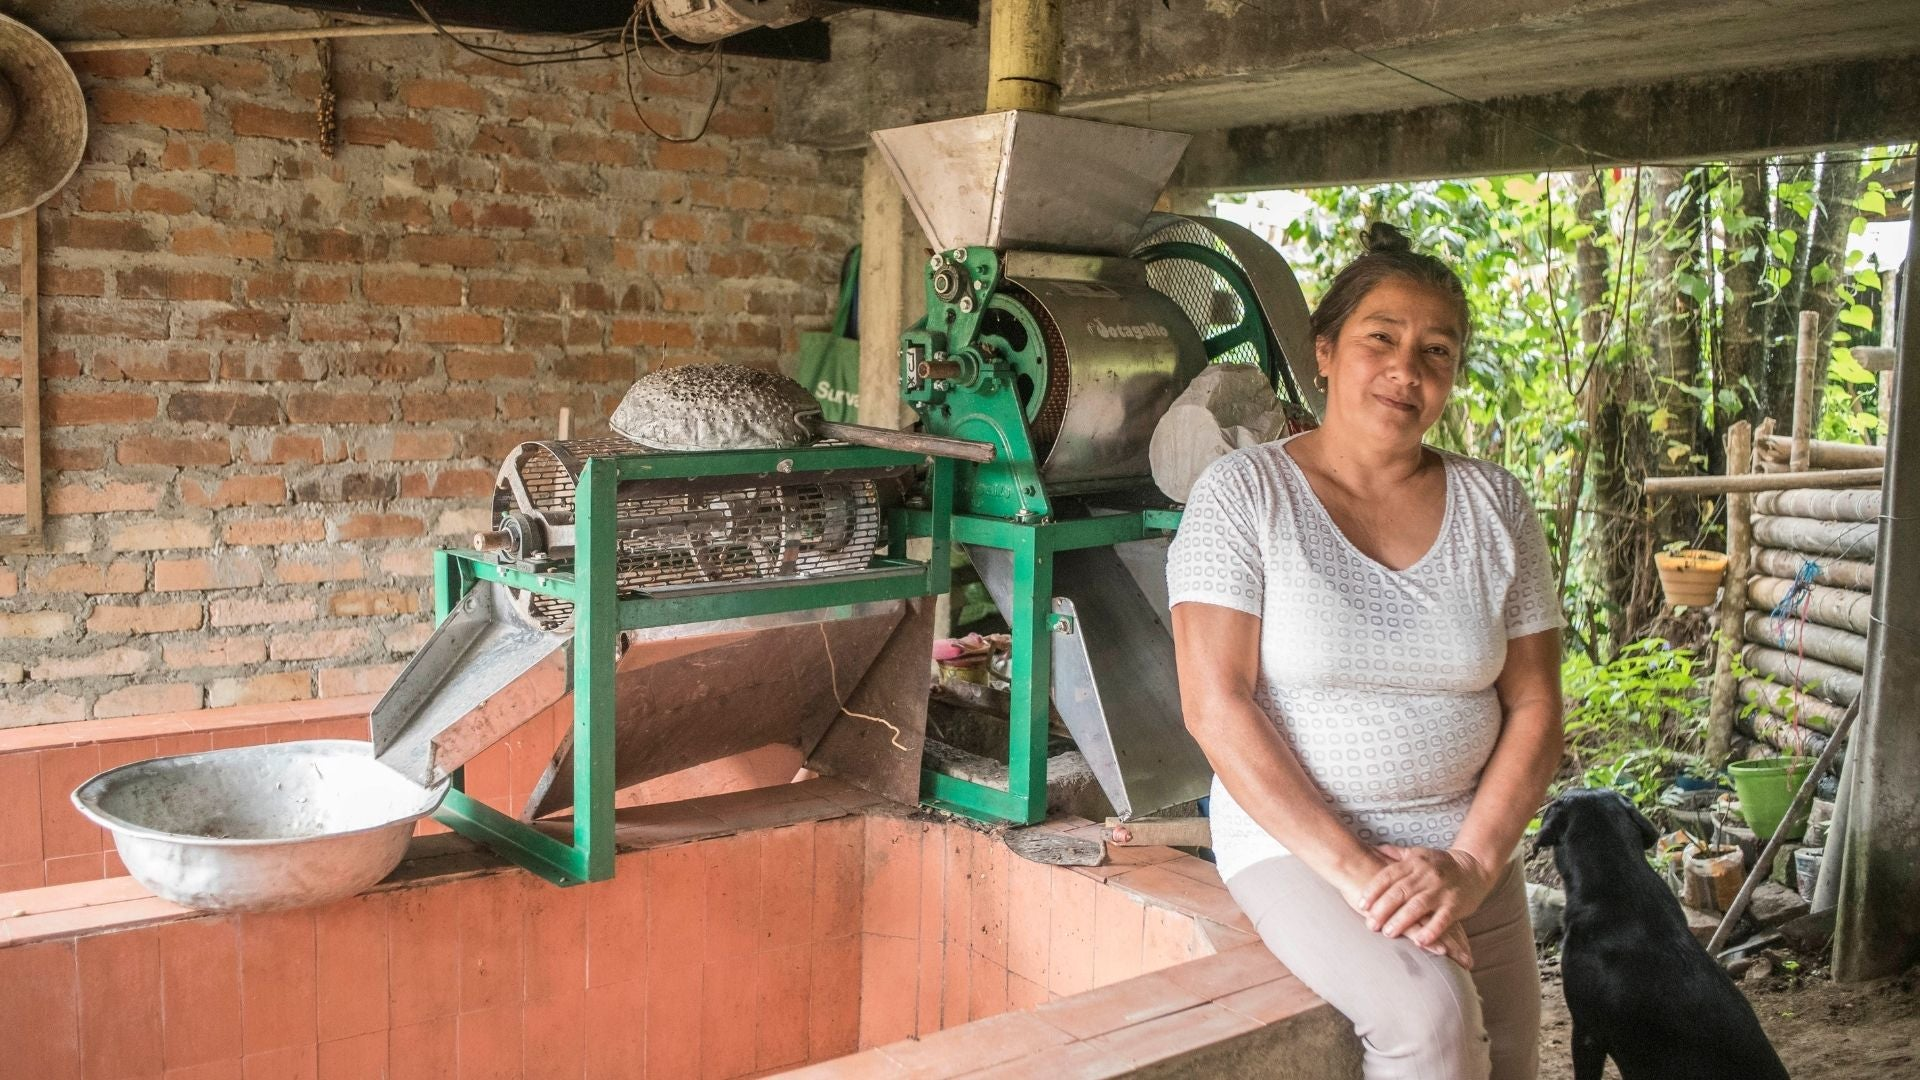 Colombian Café Femenino COSURCA farmer- Image courtesy of Fair Trade TRANSFAIR USA.